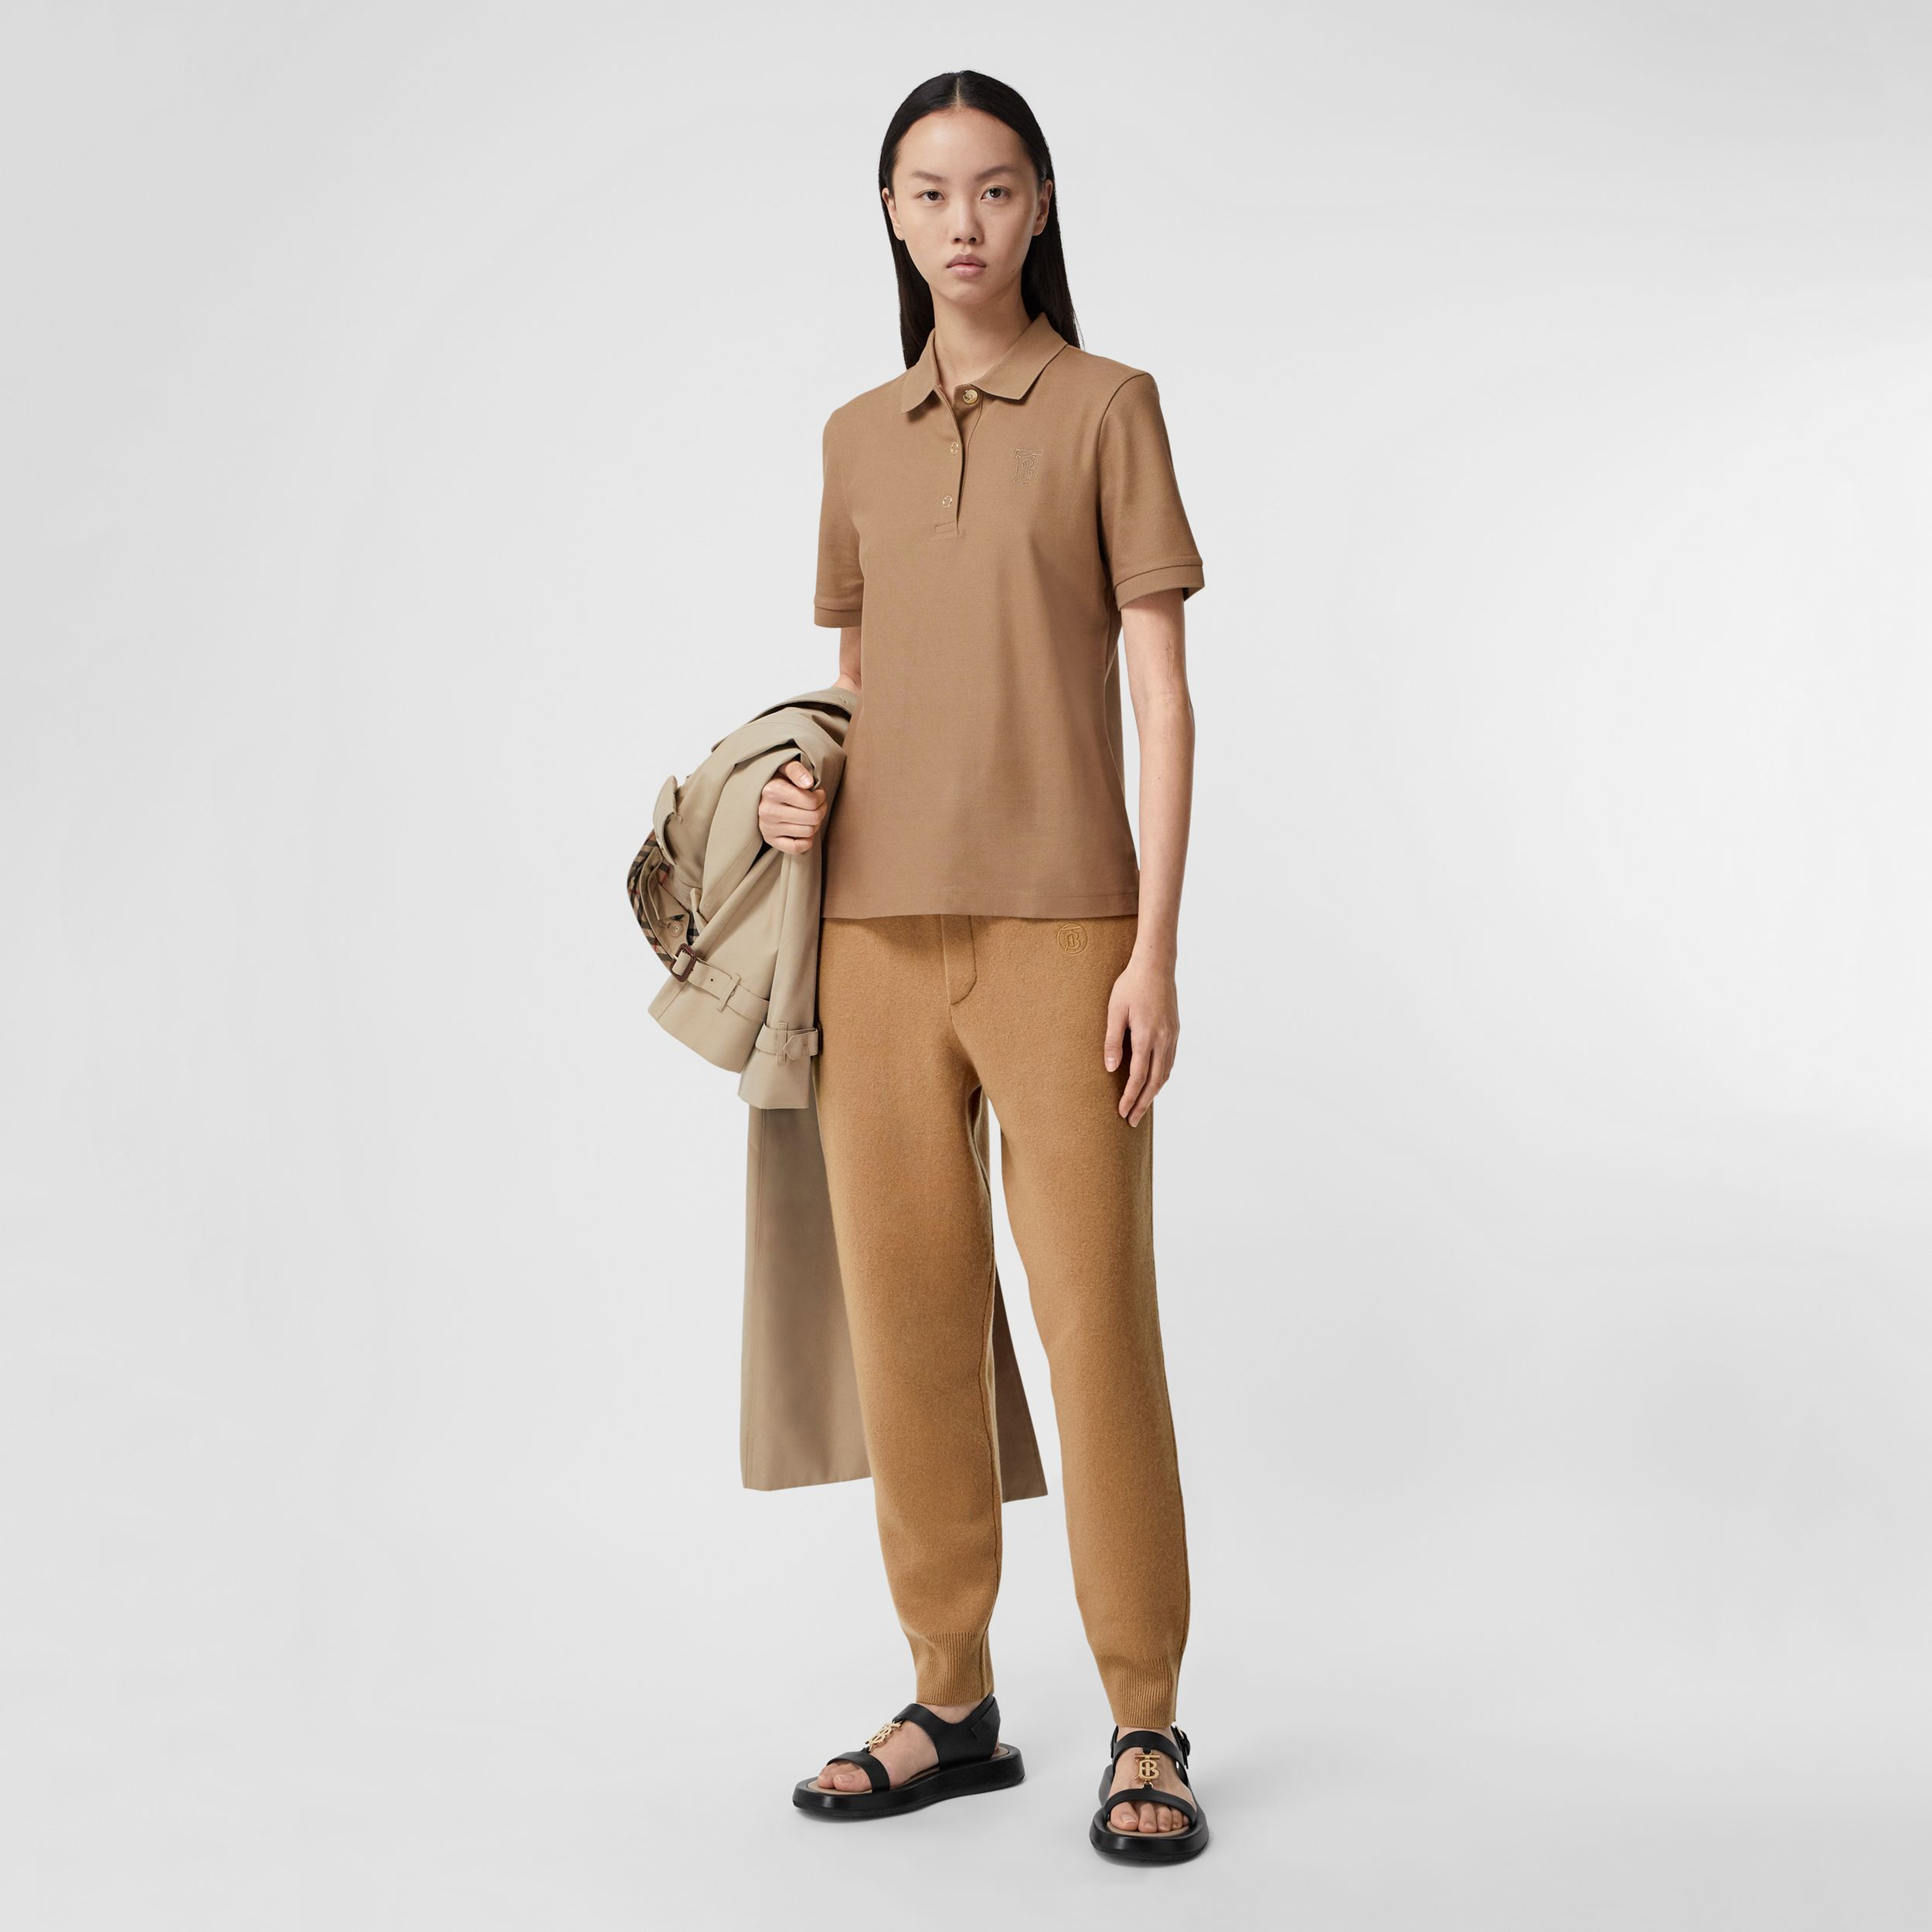 Monogram Motif Cotton Piqué Polo Shirt in Camel - Women | Burberry Hong Kong S.A.R. - 1